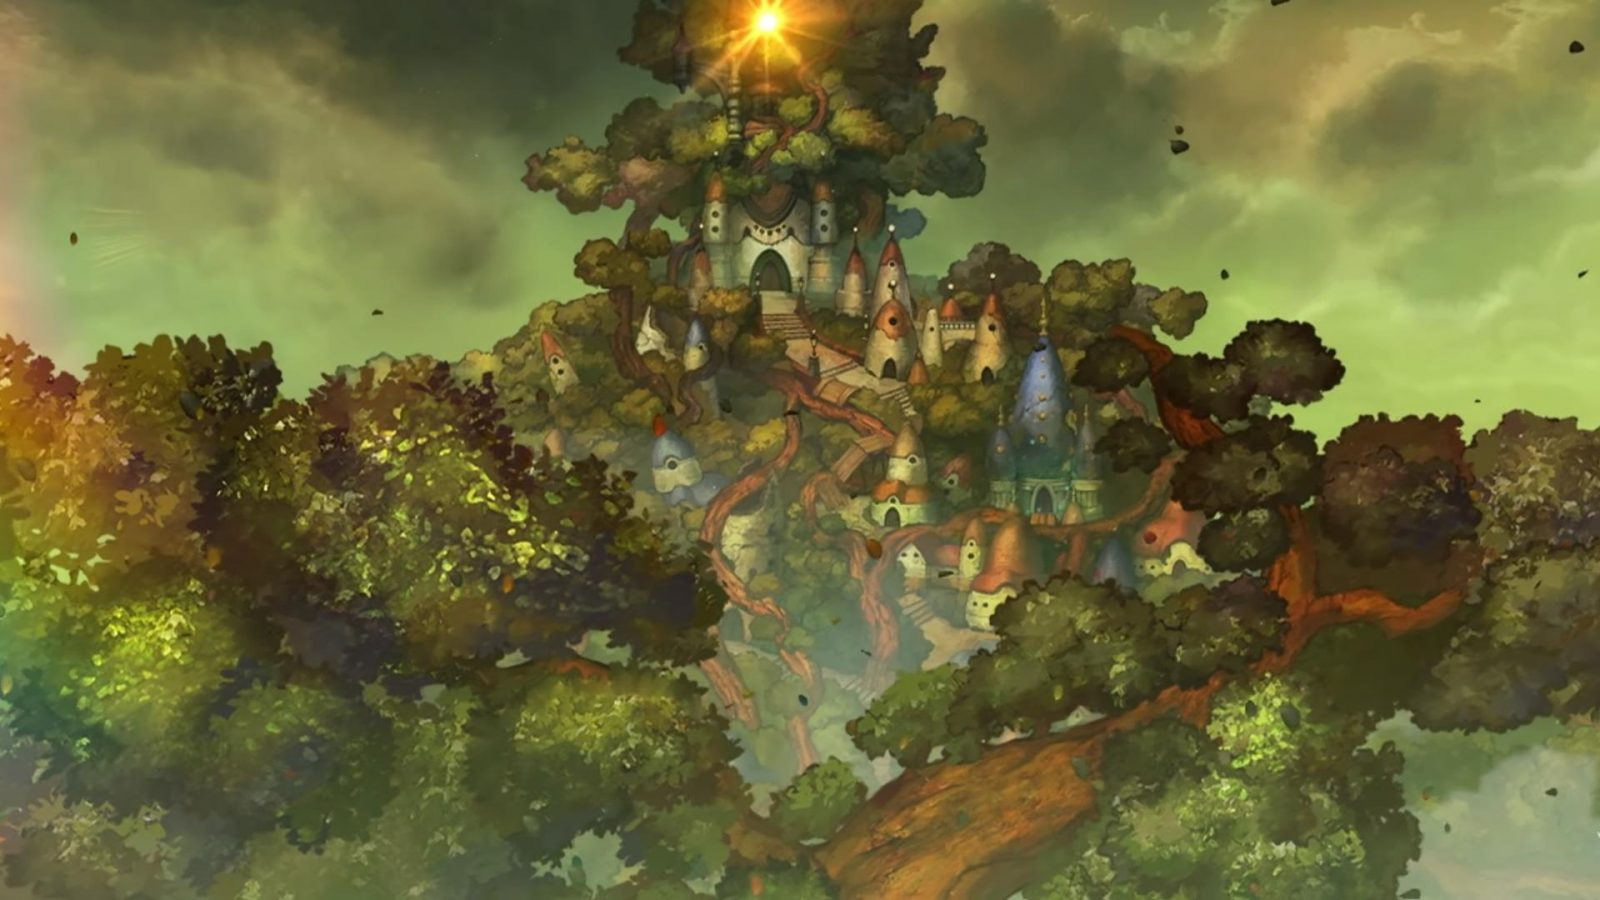 """Bravely Default 2's Composer, Revo, is Creating the Soundtrack Using """"All His Courage"""""""